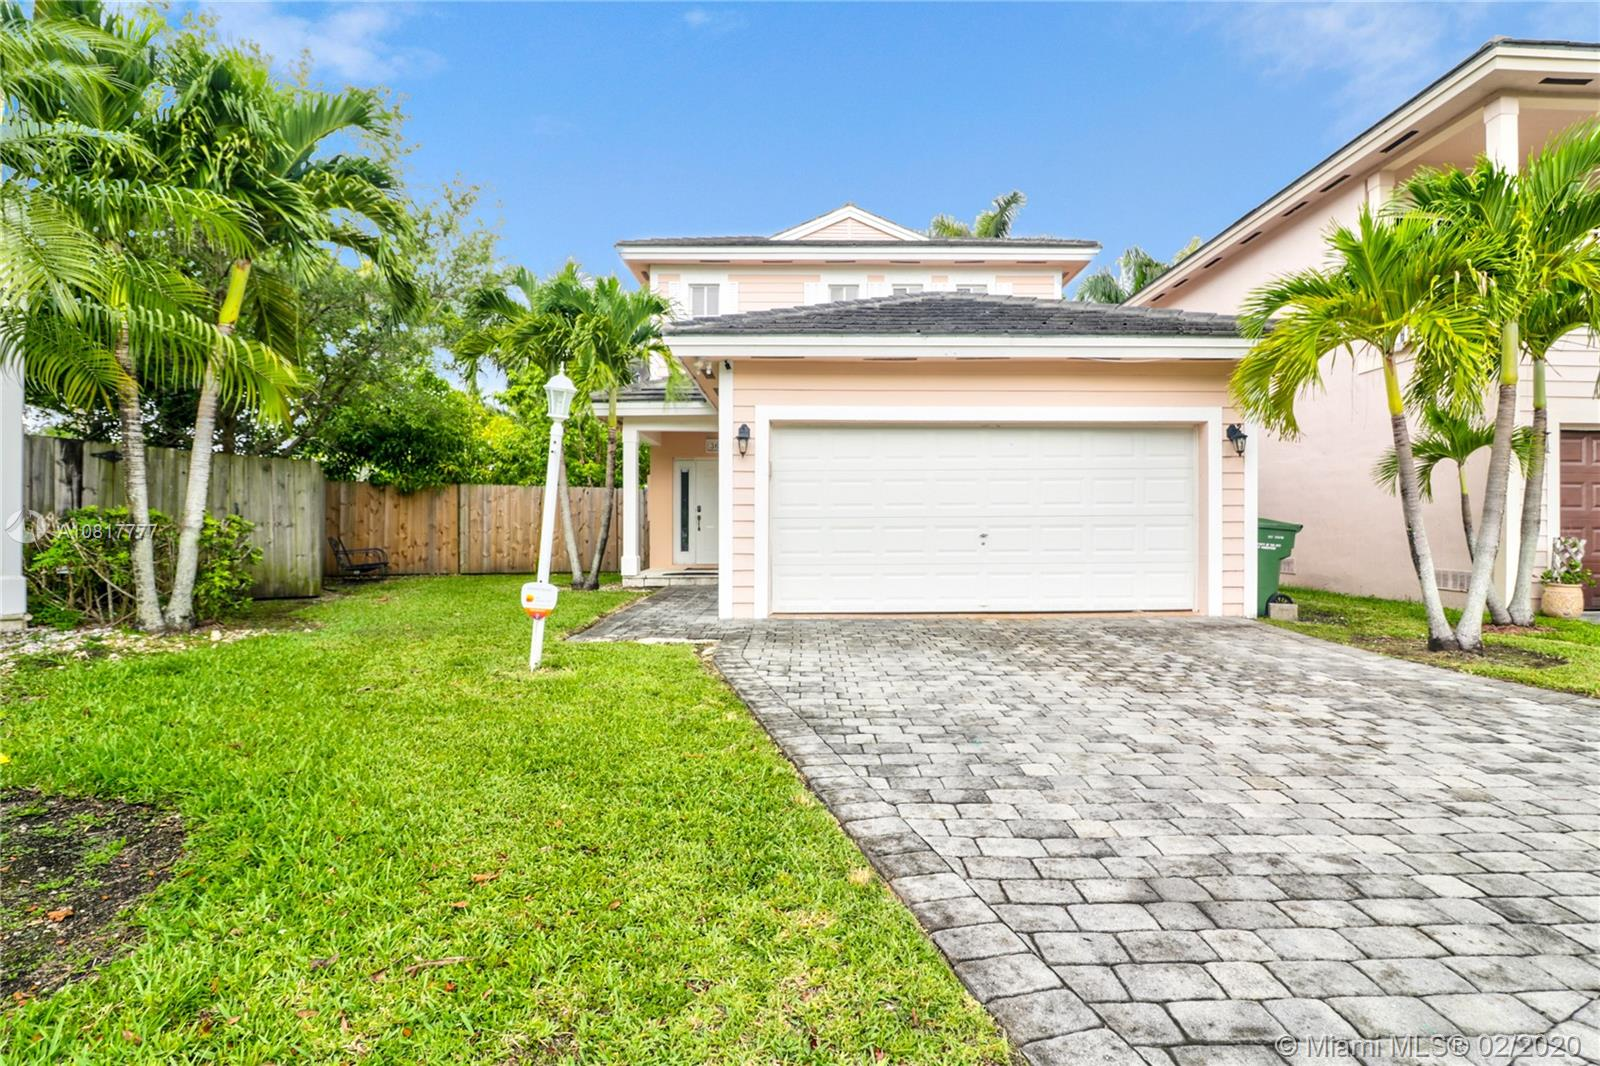 360 NE 33rd Ter, Homestead, FL 33033 - Homestead, FL real estate listing